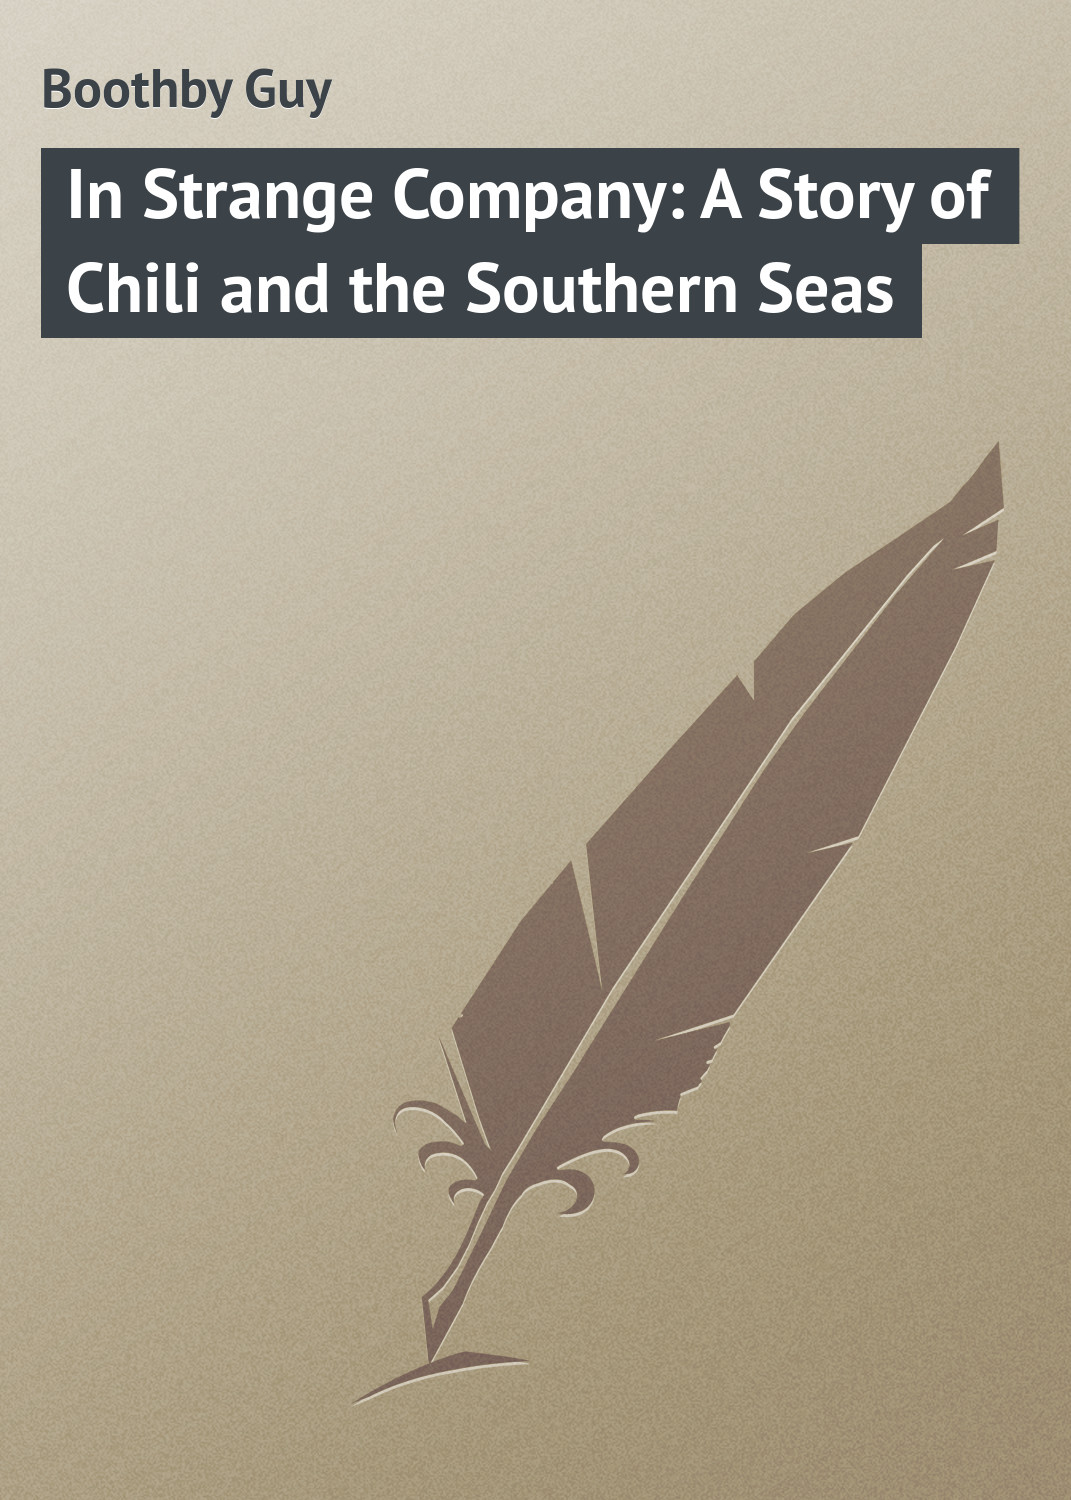 Boothby Guy In Strange Company: A Story of Chili and the Southern Seas